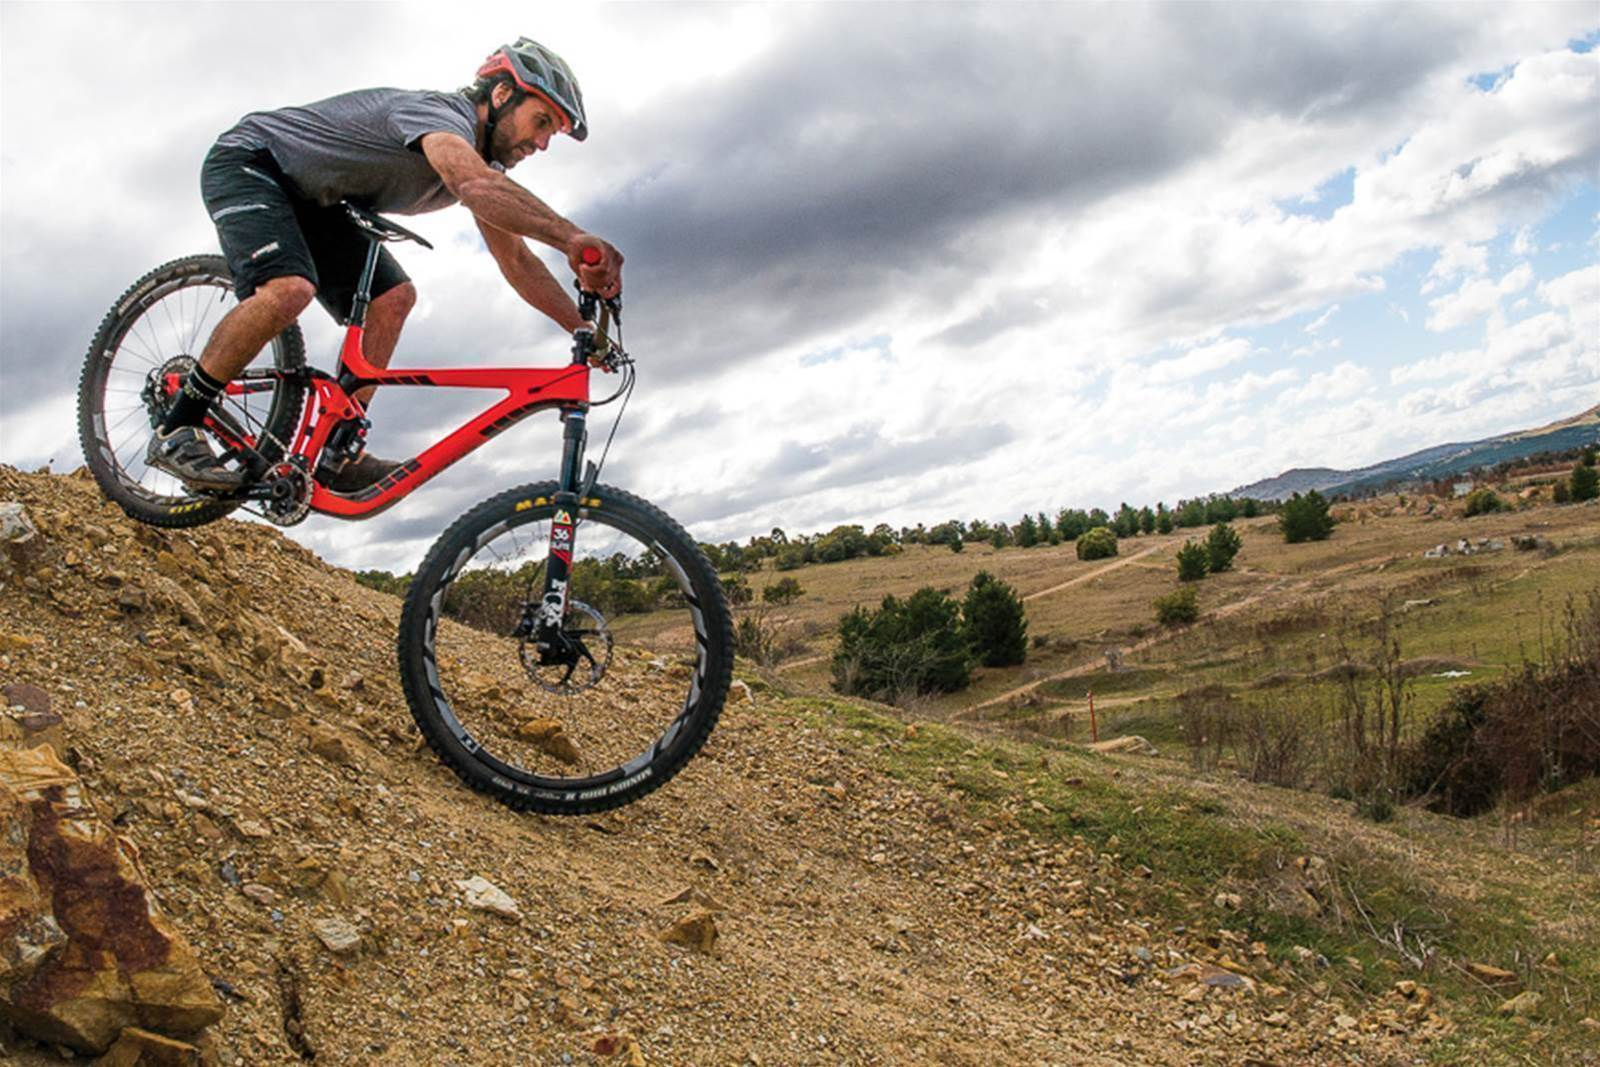 Skills: How to be confident on steep terrain